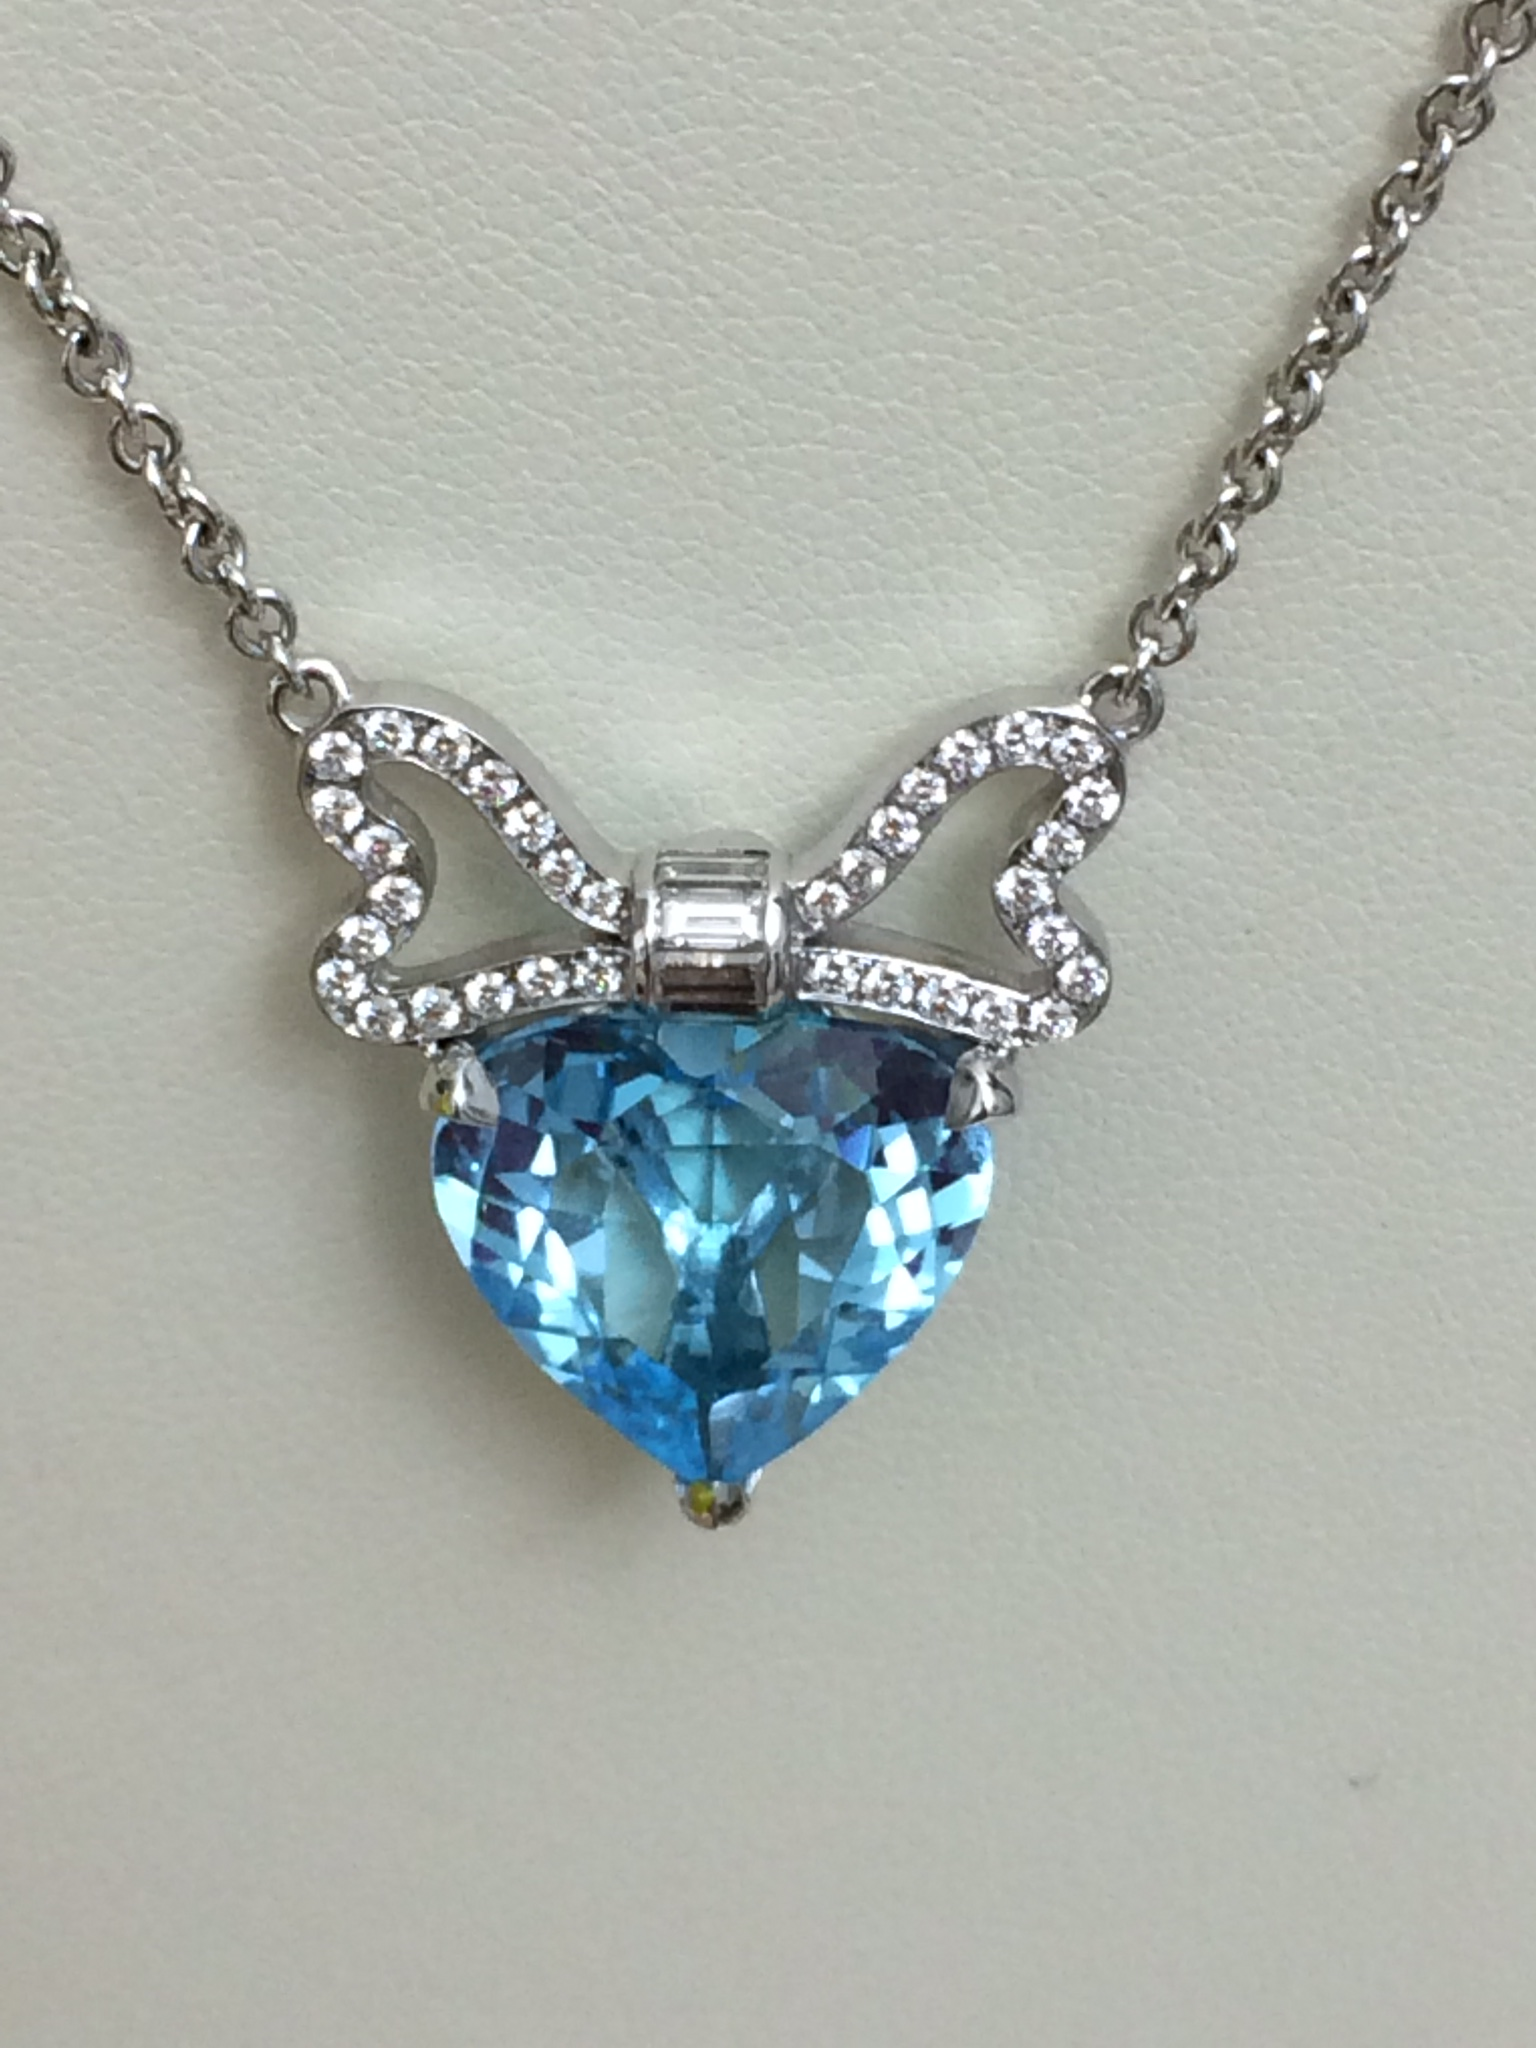 14K White Gold Necklace with Blue Topaz and Diamonds